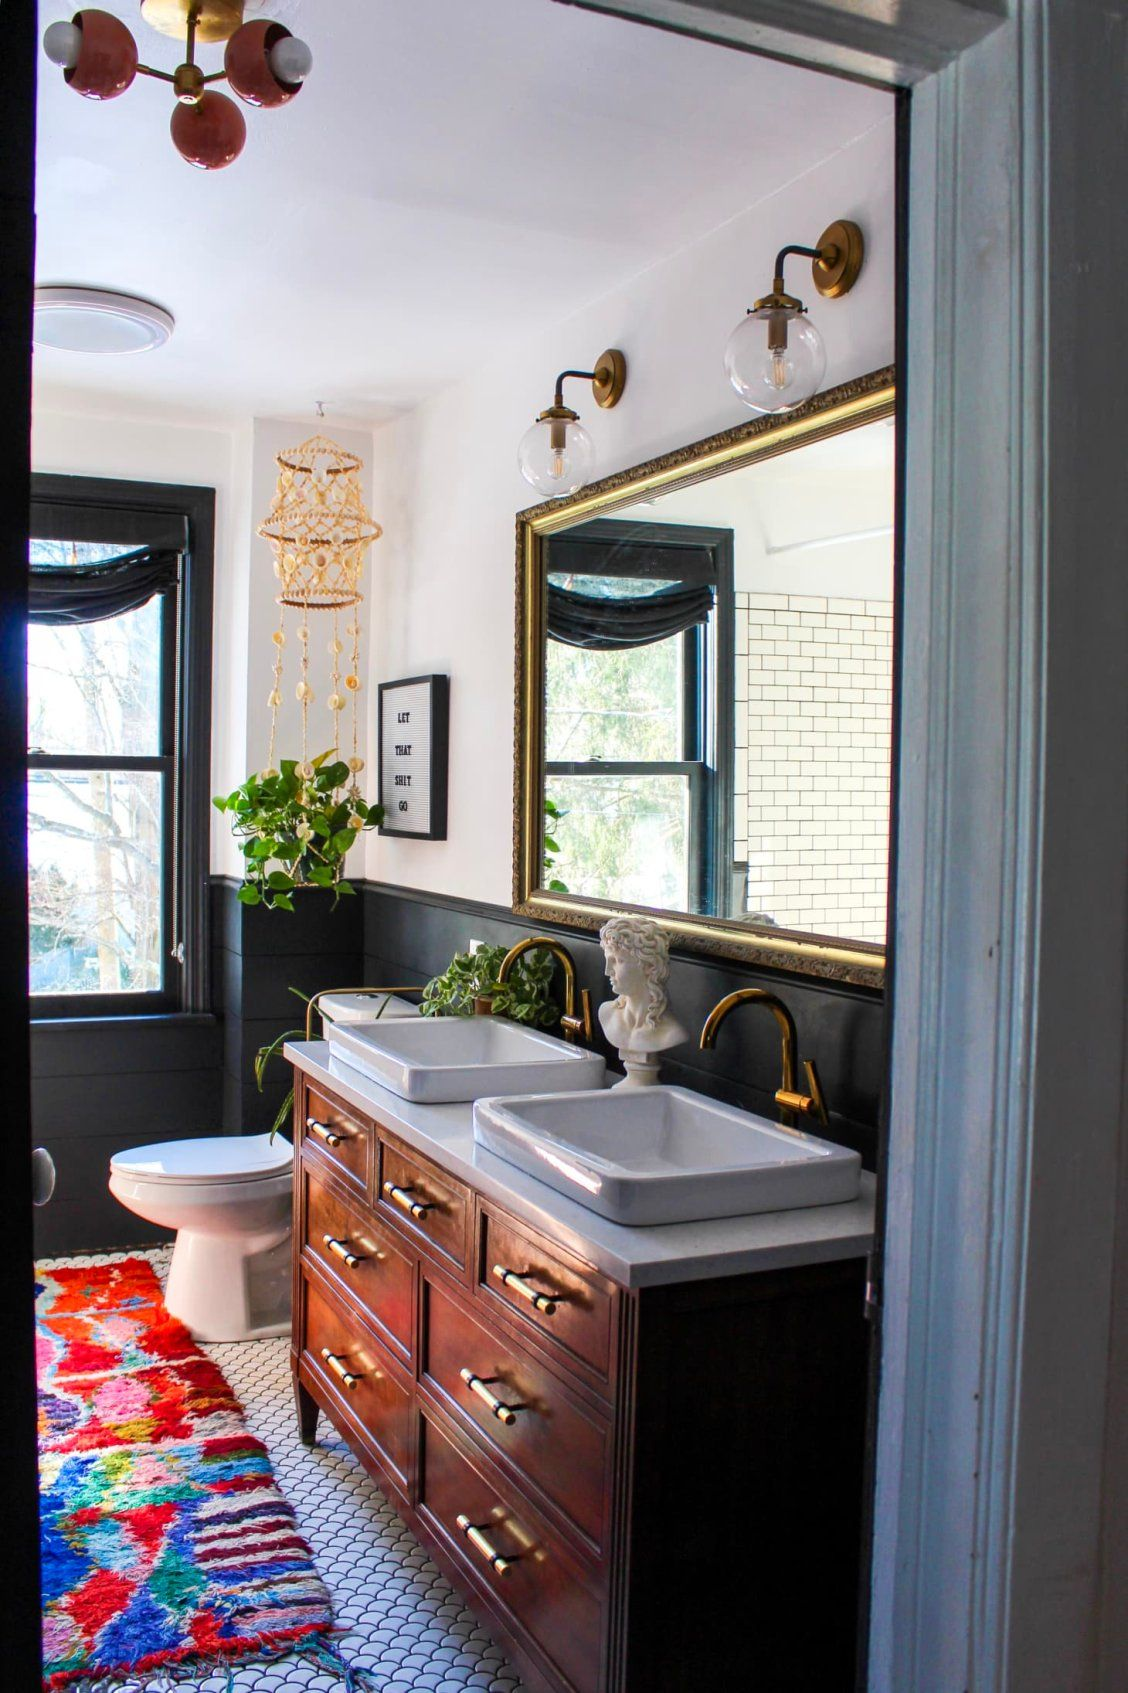 Nearly Every Room in This Vintage-Inspired Eclectic Farmhouse Is Fabulously Decorated